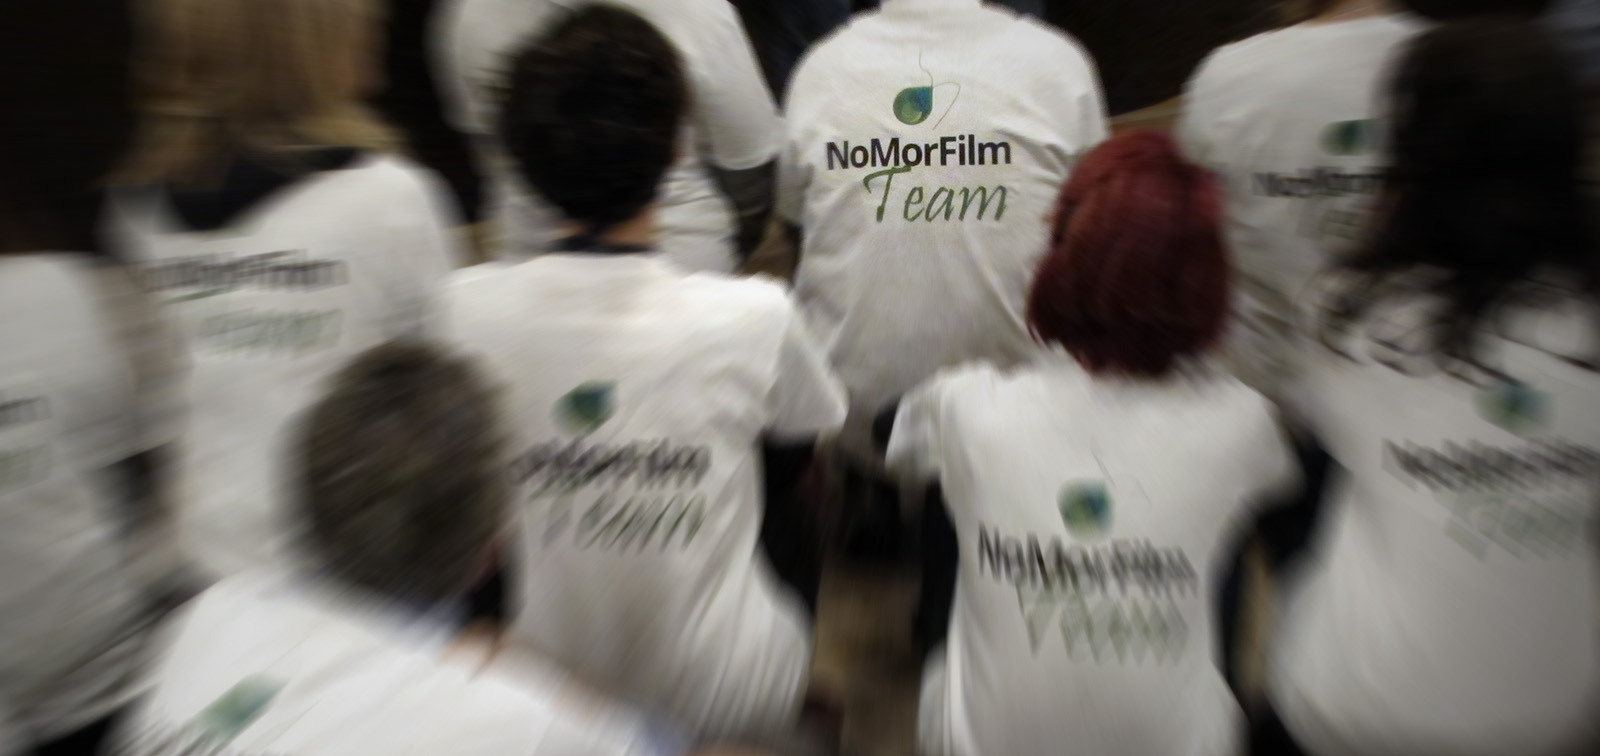 NoMorFilm project ends